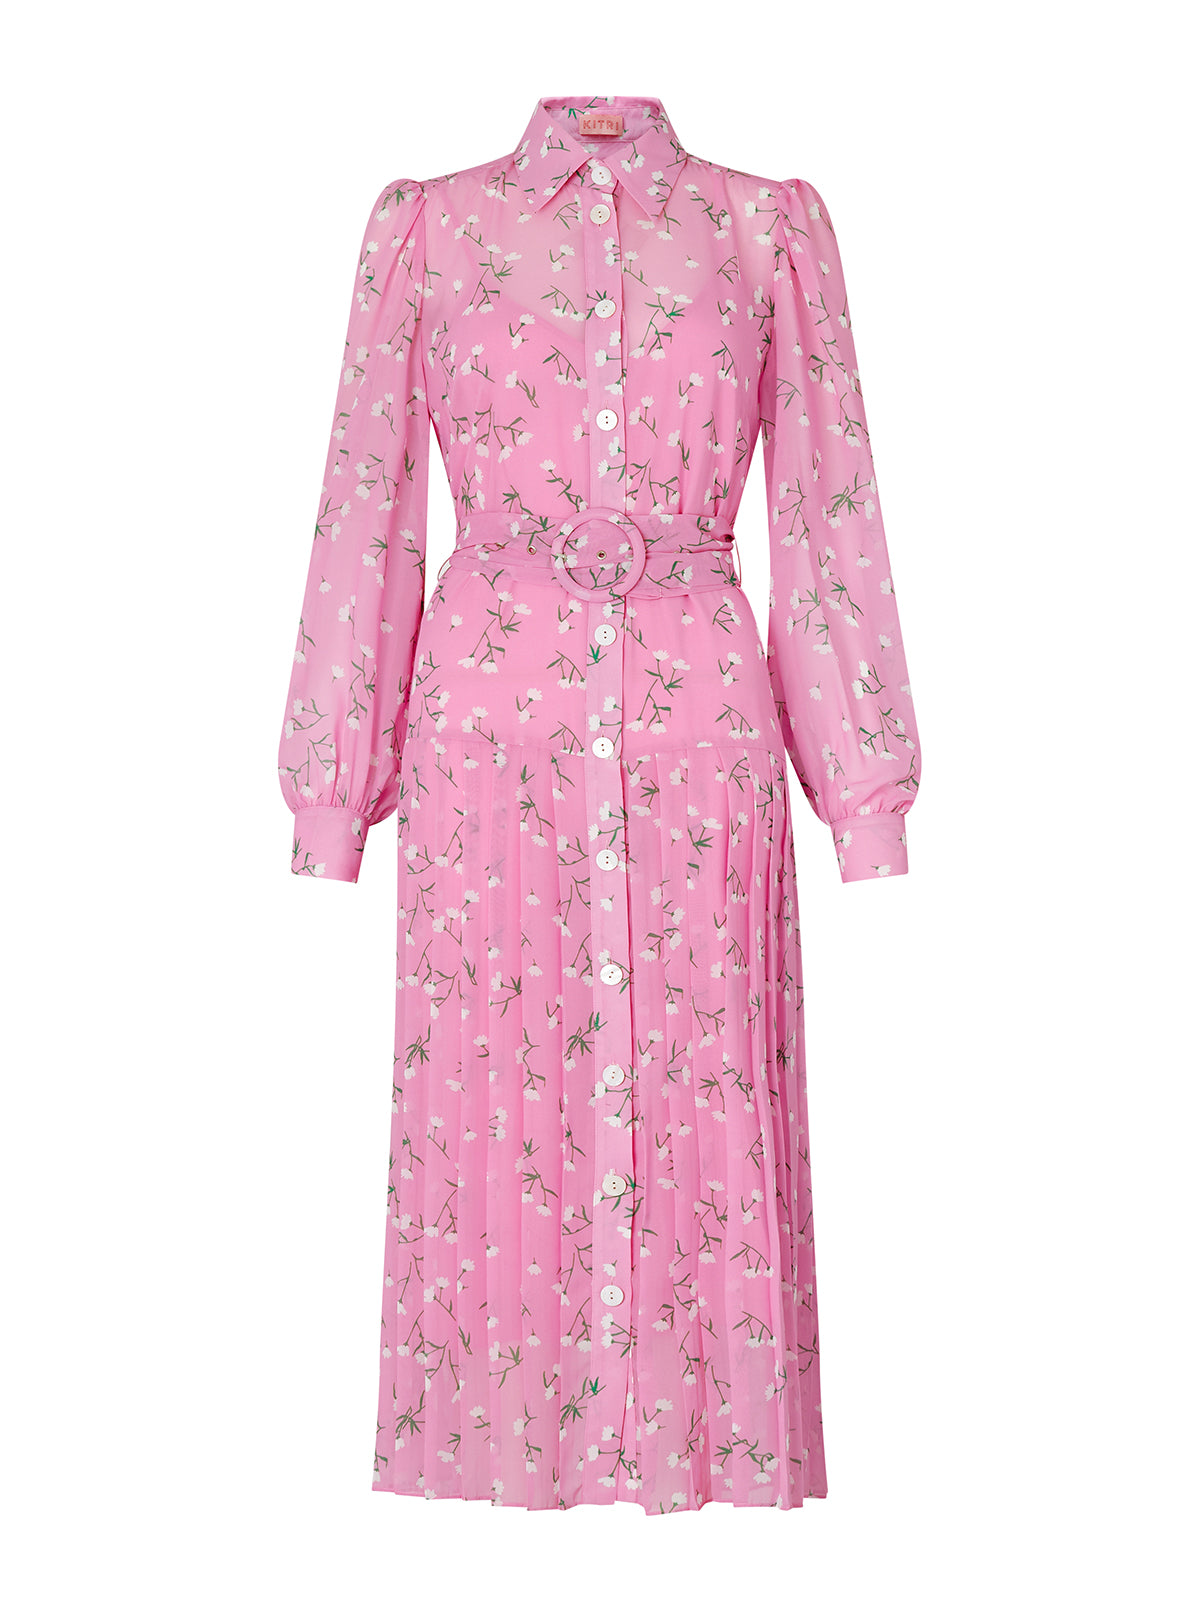 Tara Pink Floral Print Shirt Dress by KITRI Studio